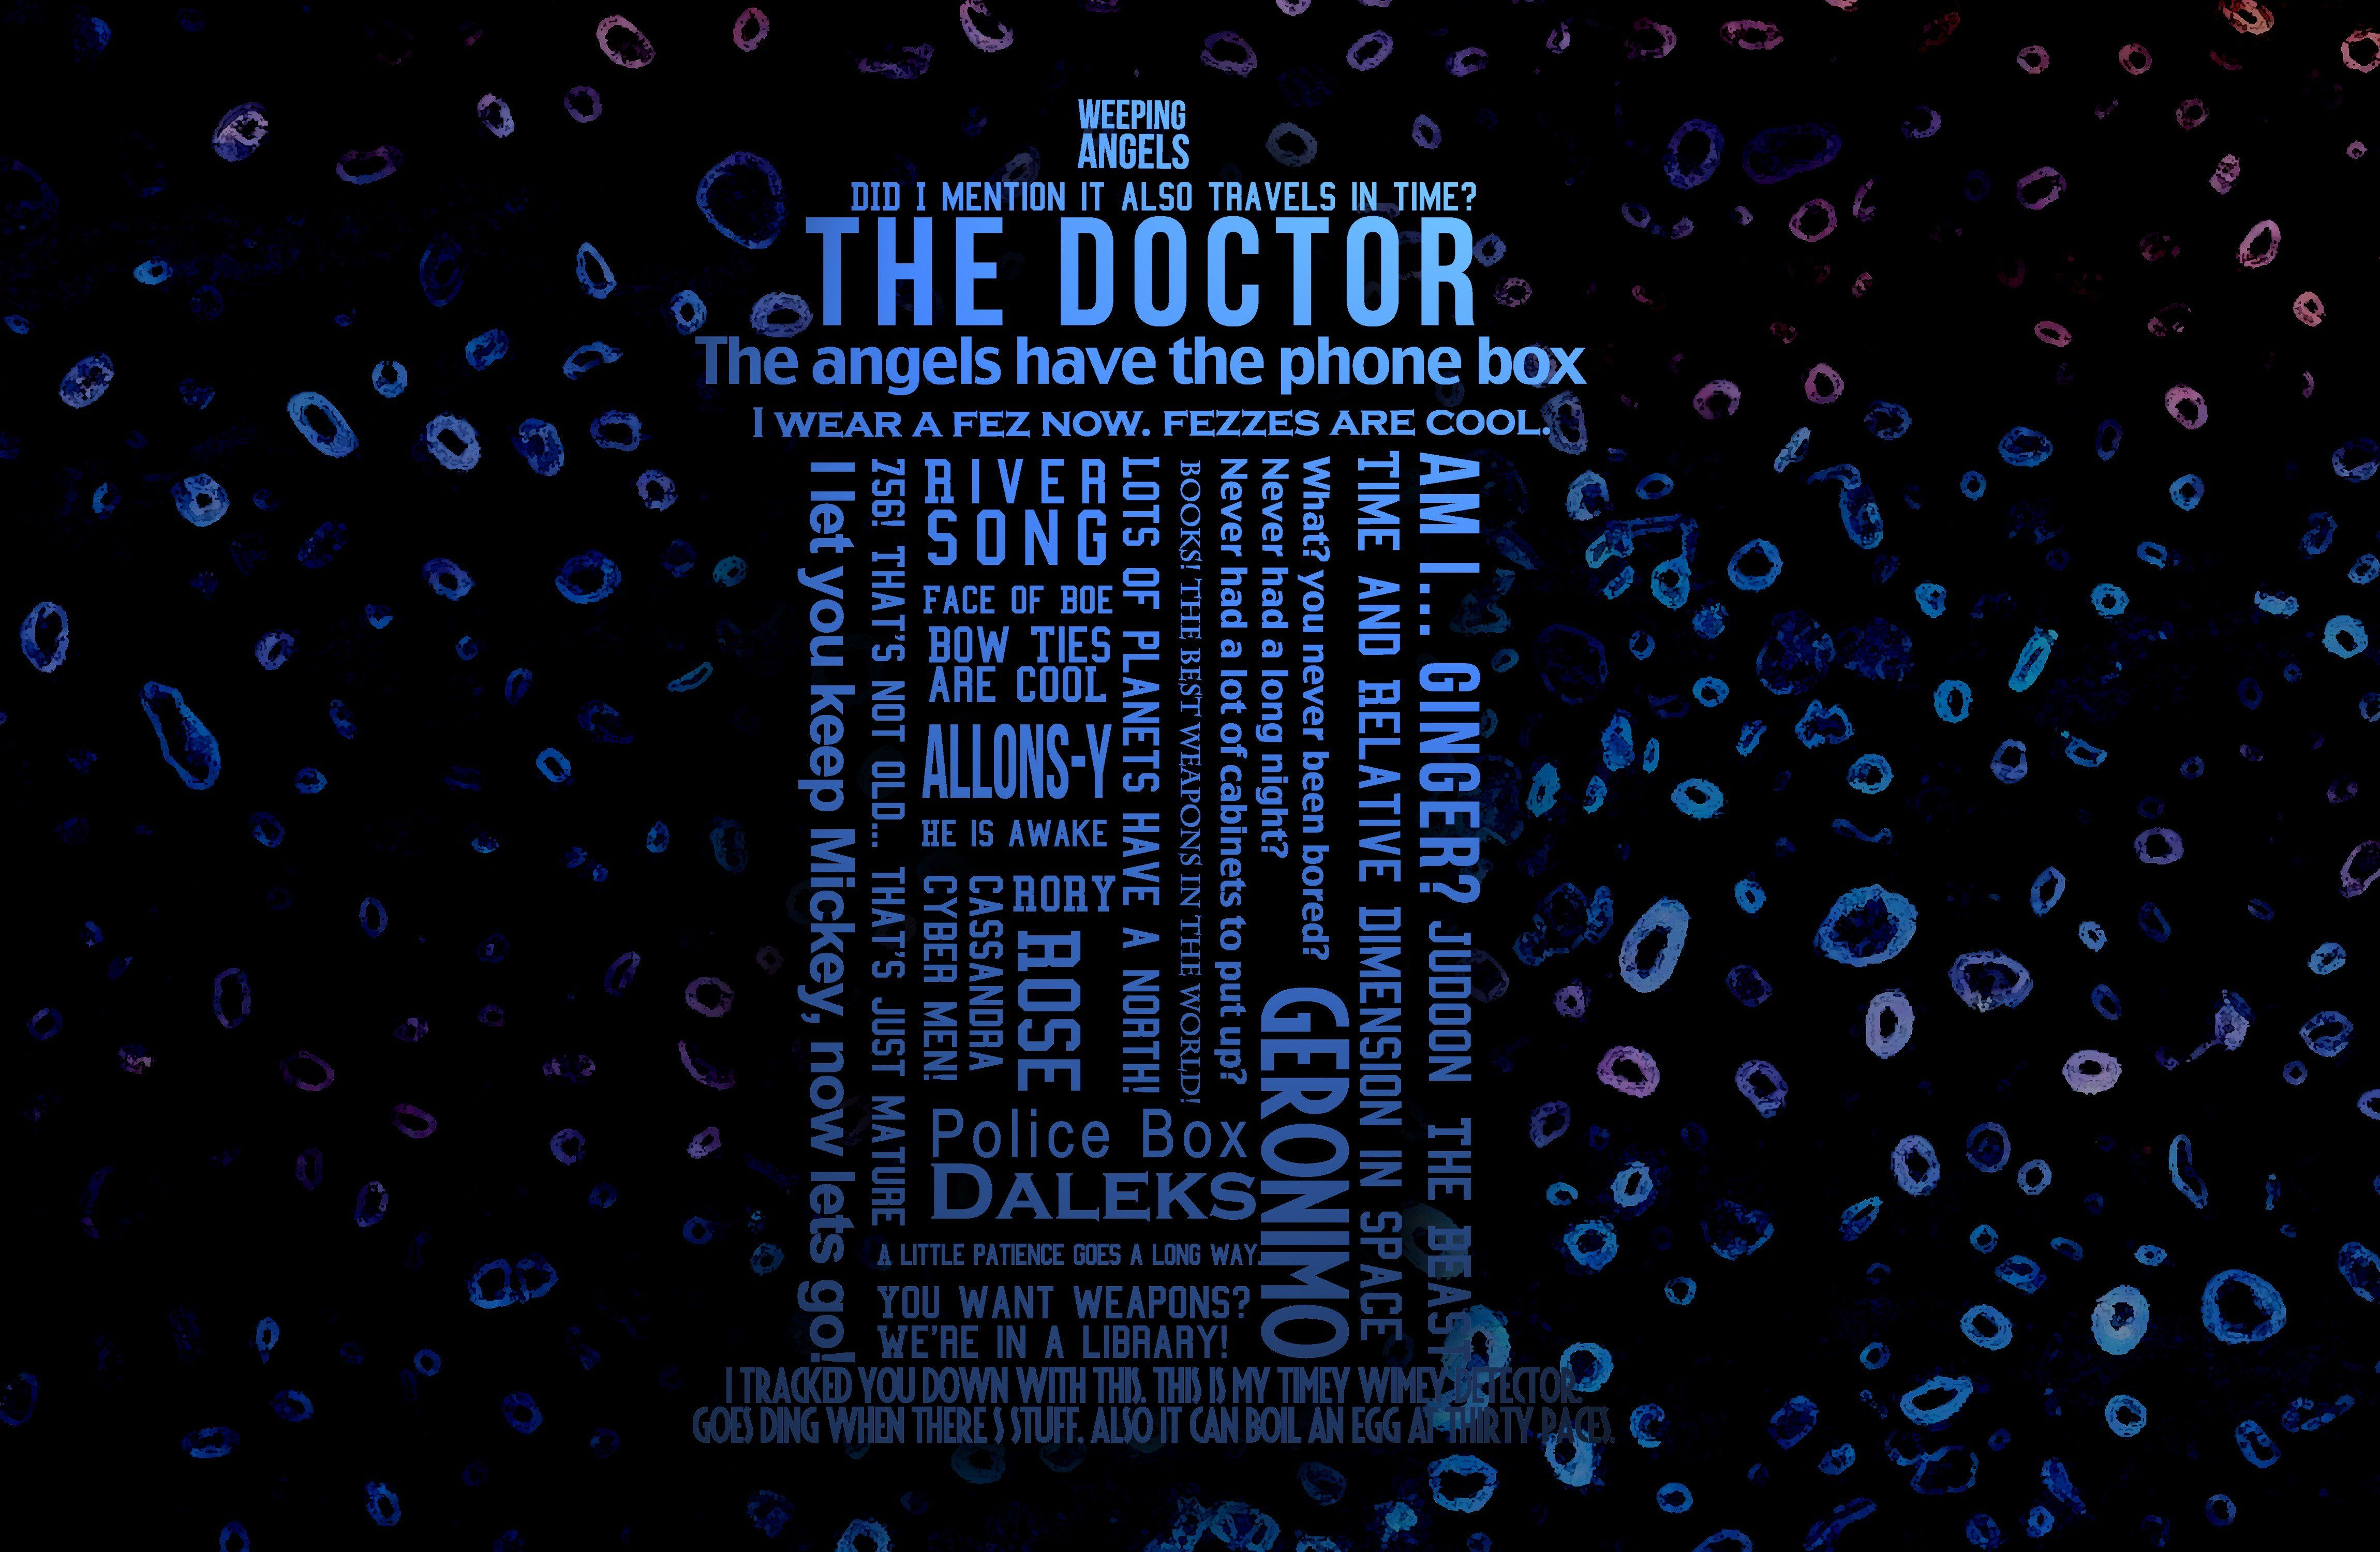 Pin By Aamdm A On Doctor Who Tardis Wallpaper Doctor Who Wallpaper Tardis